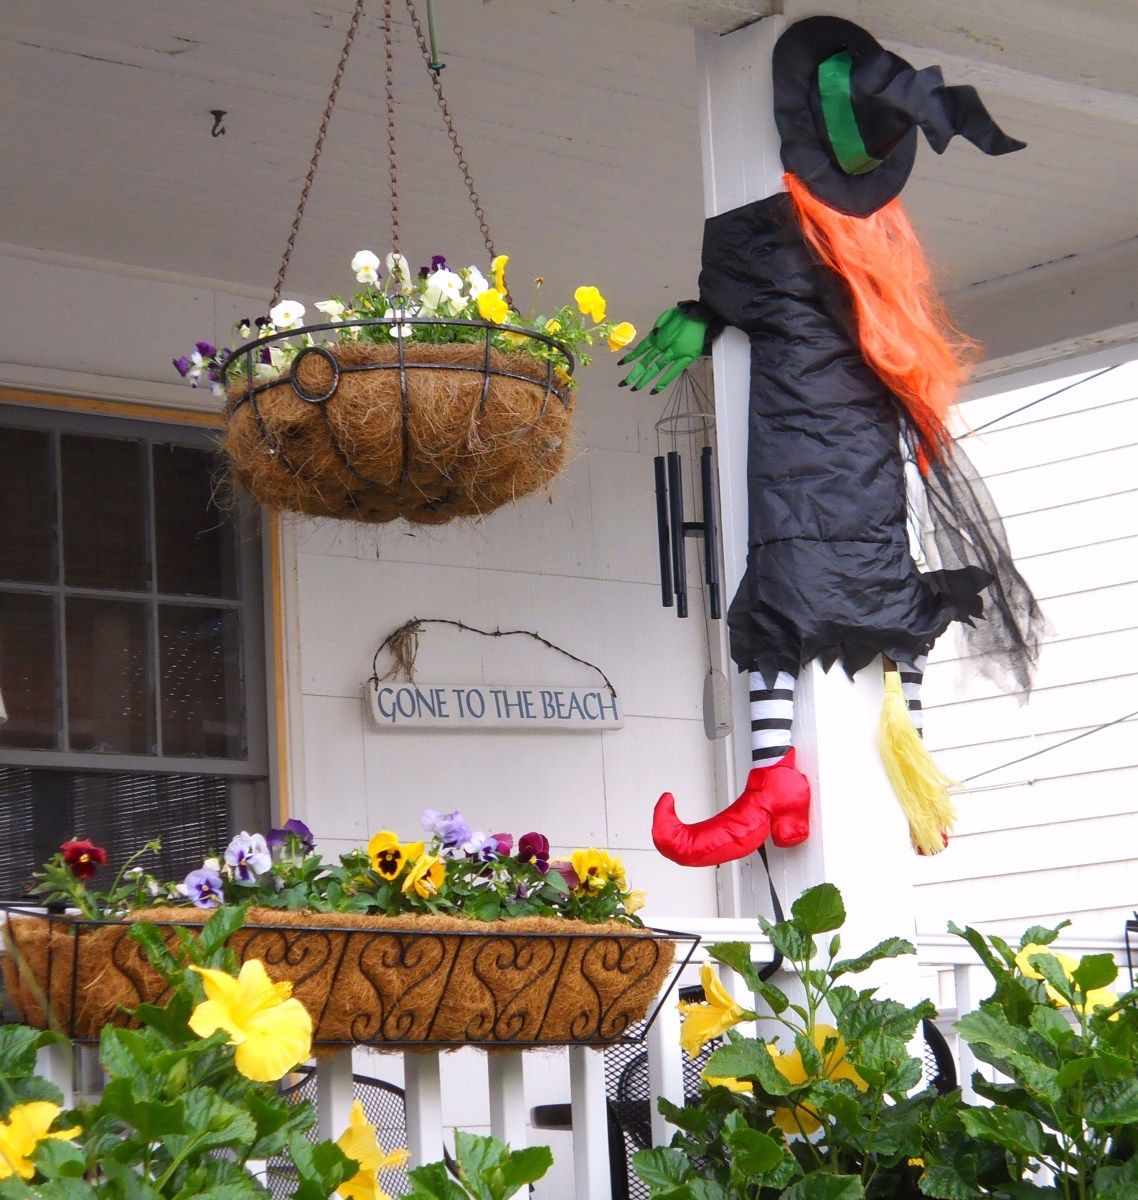 Beach house porch decorated for Sea Witch Festival.